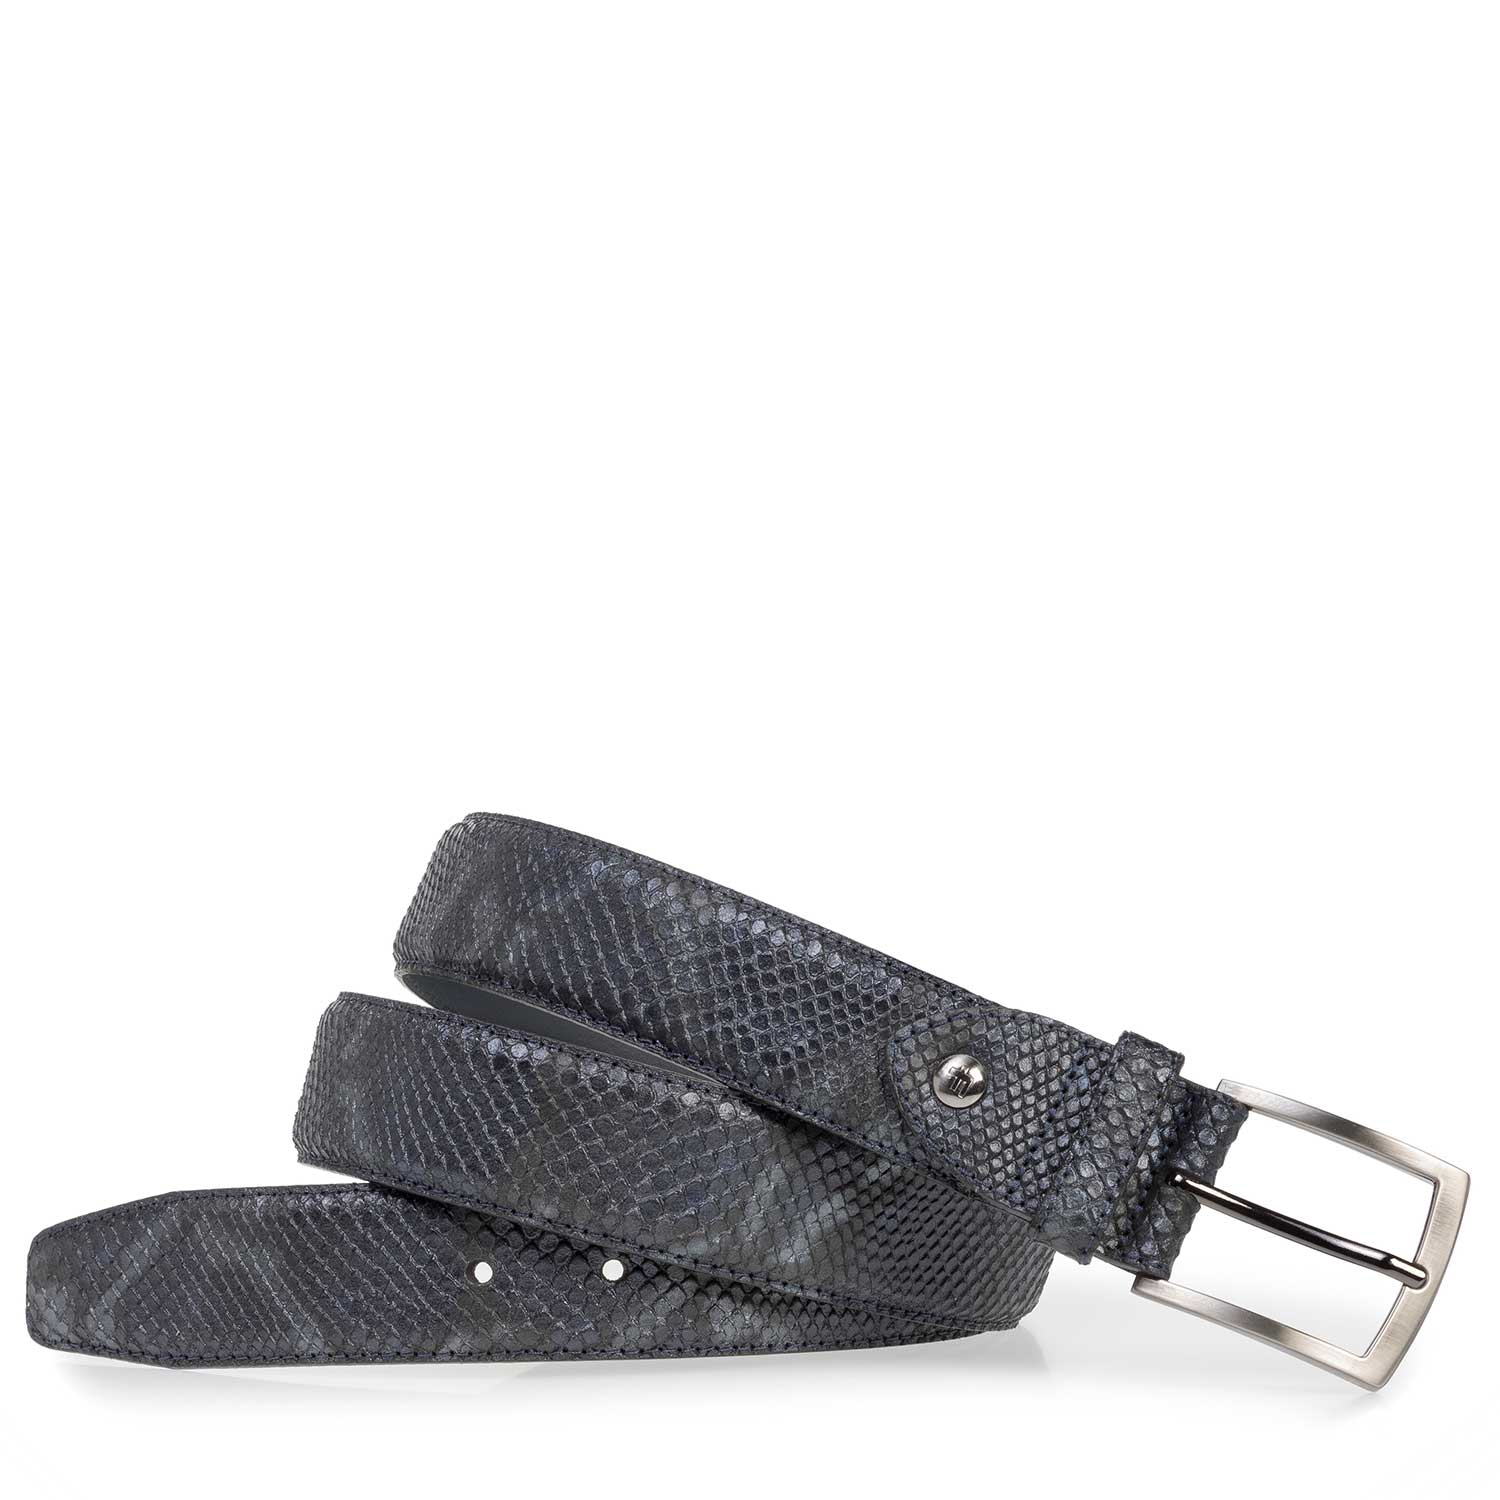 75201/57 - Blue leather belt with croco print